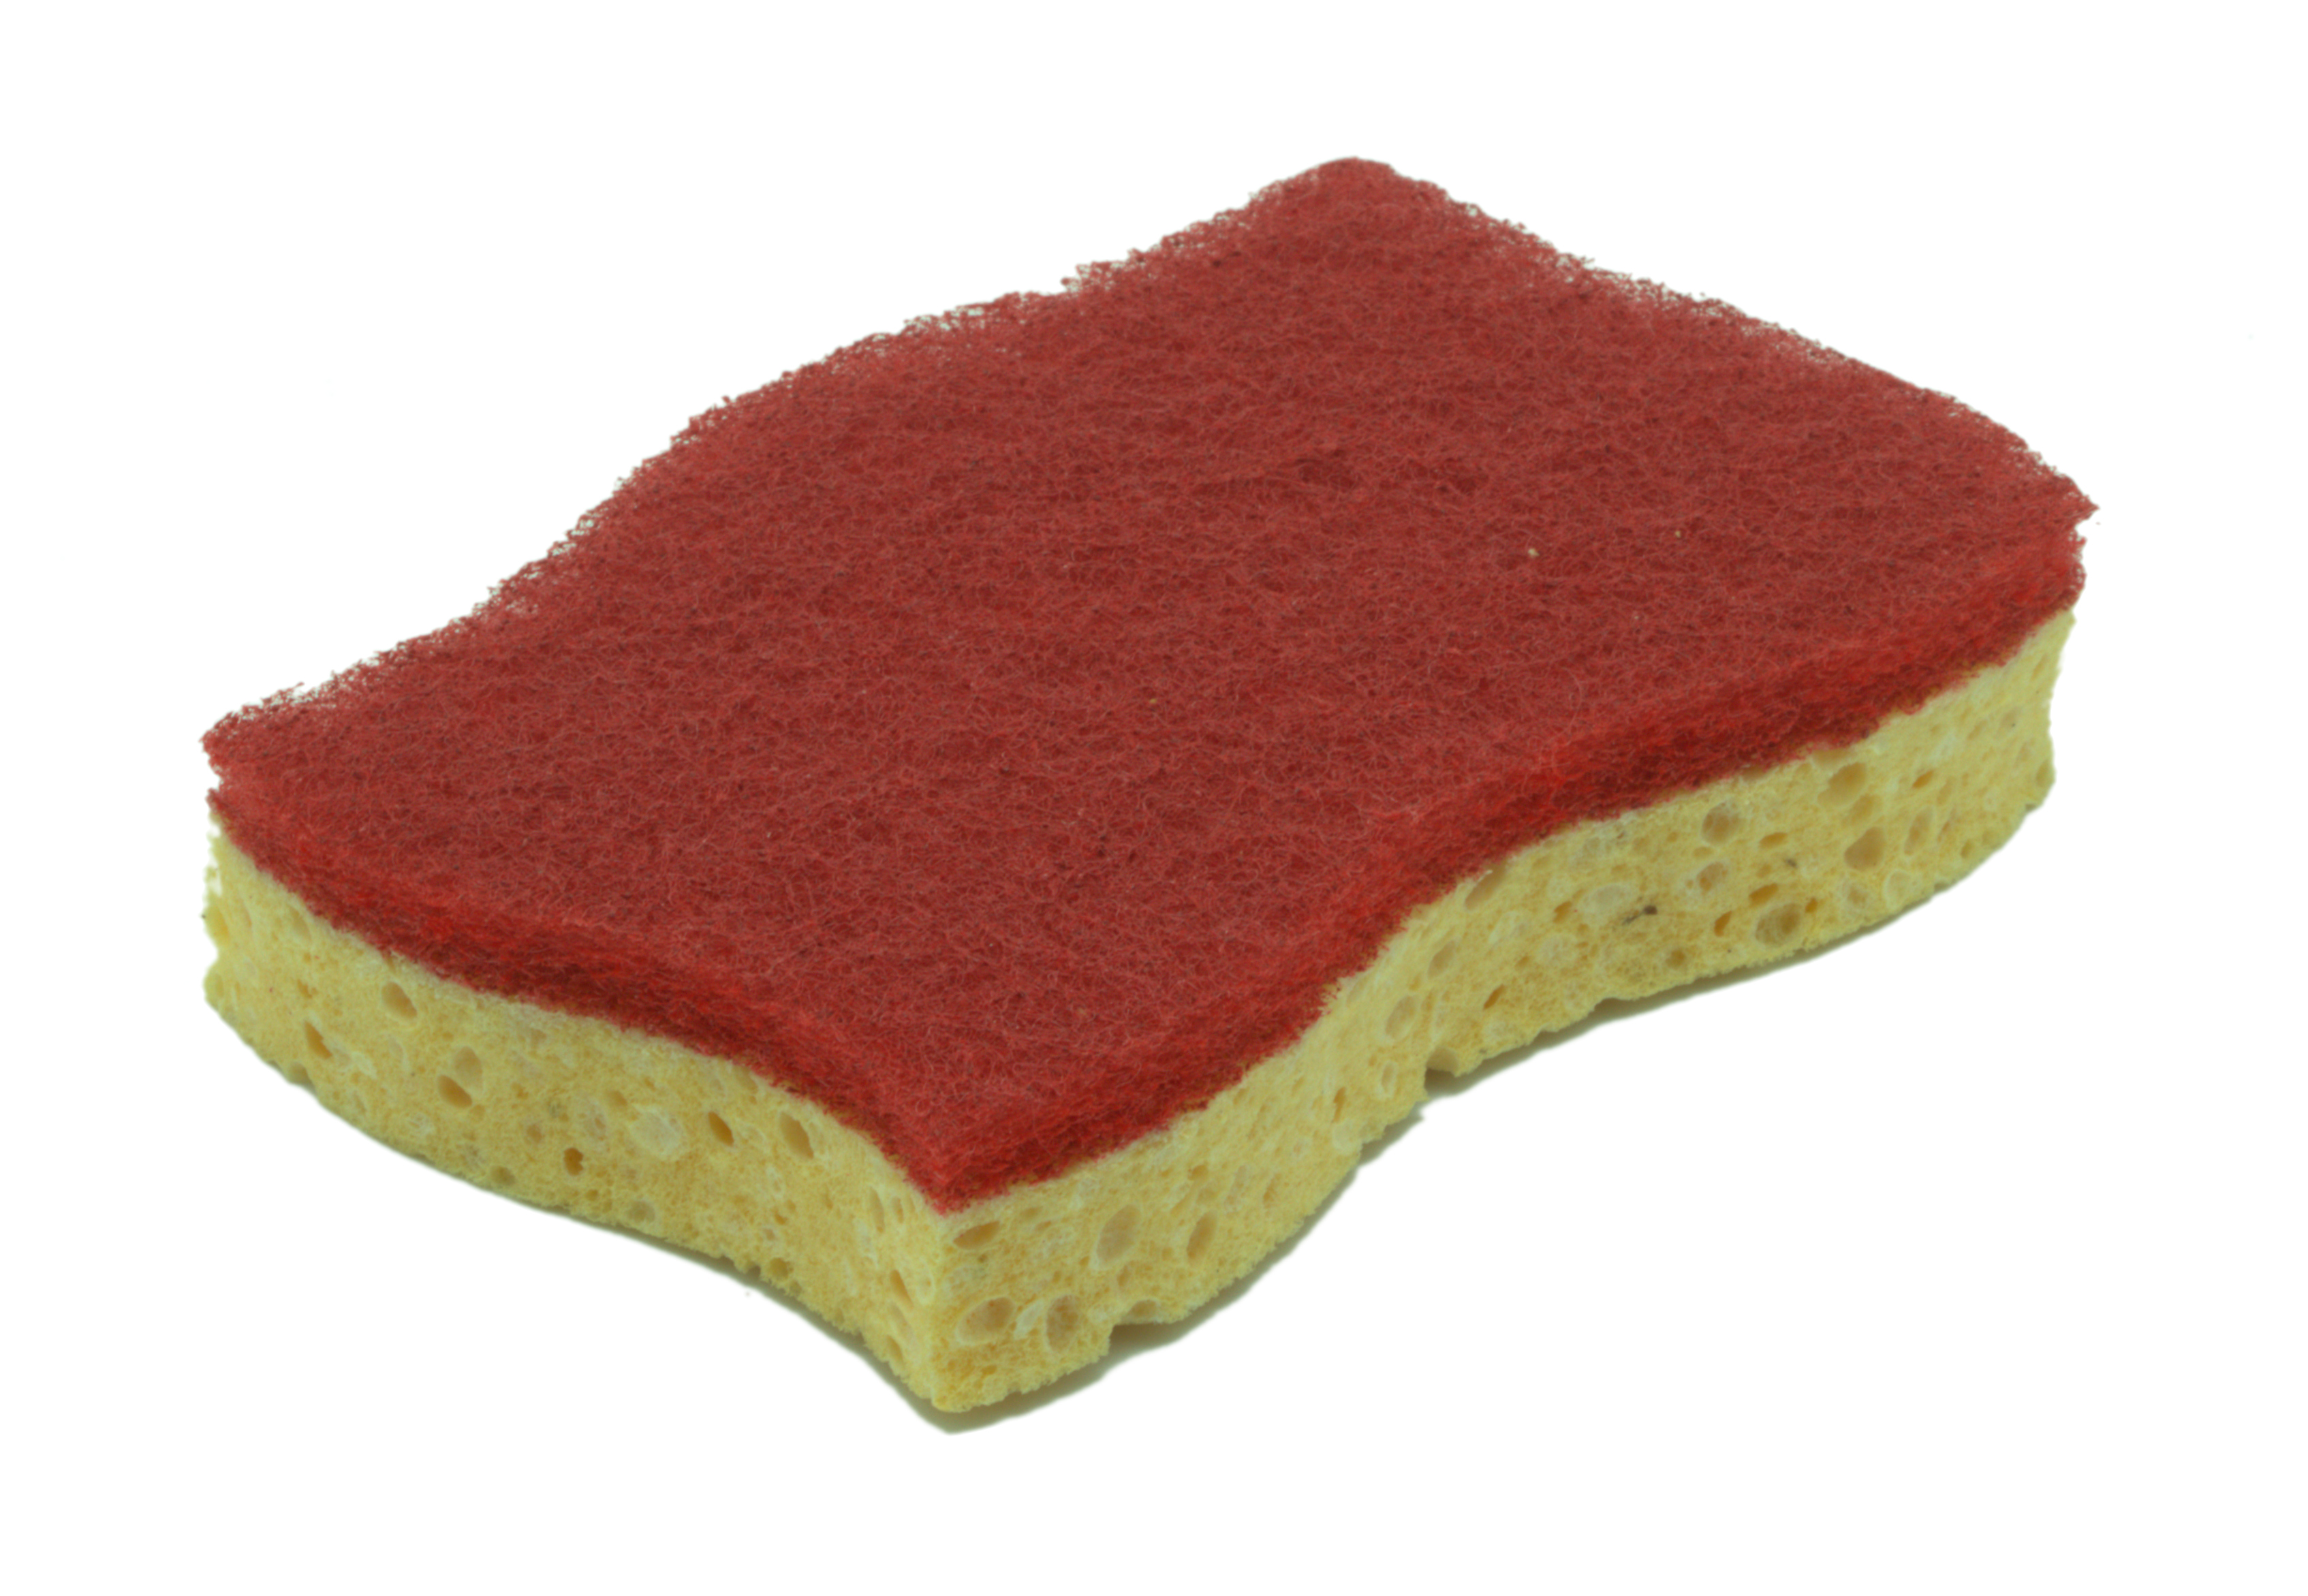 File ponge type 3 1 jpg wikimedia commons - Seven different uses of the kitchen sponge ...